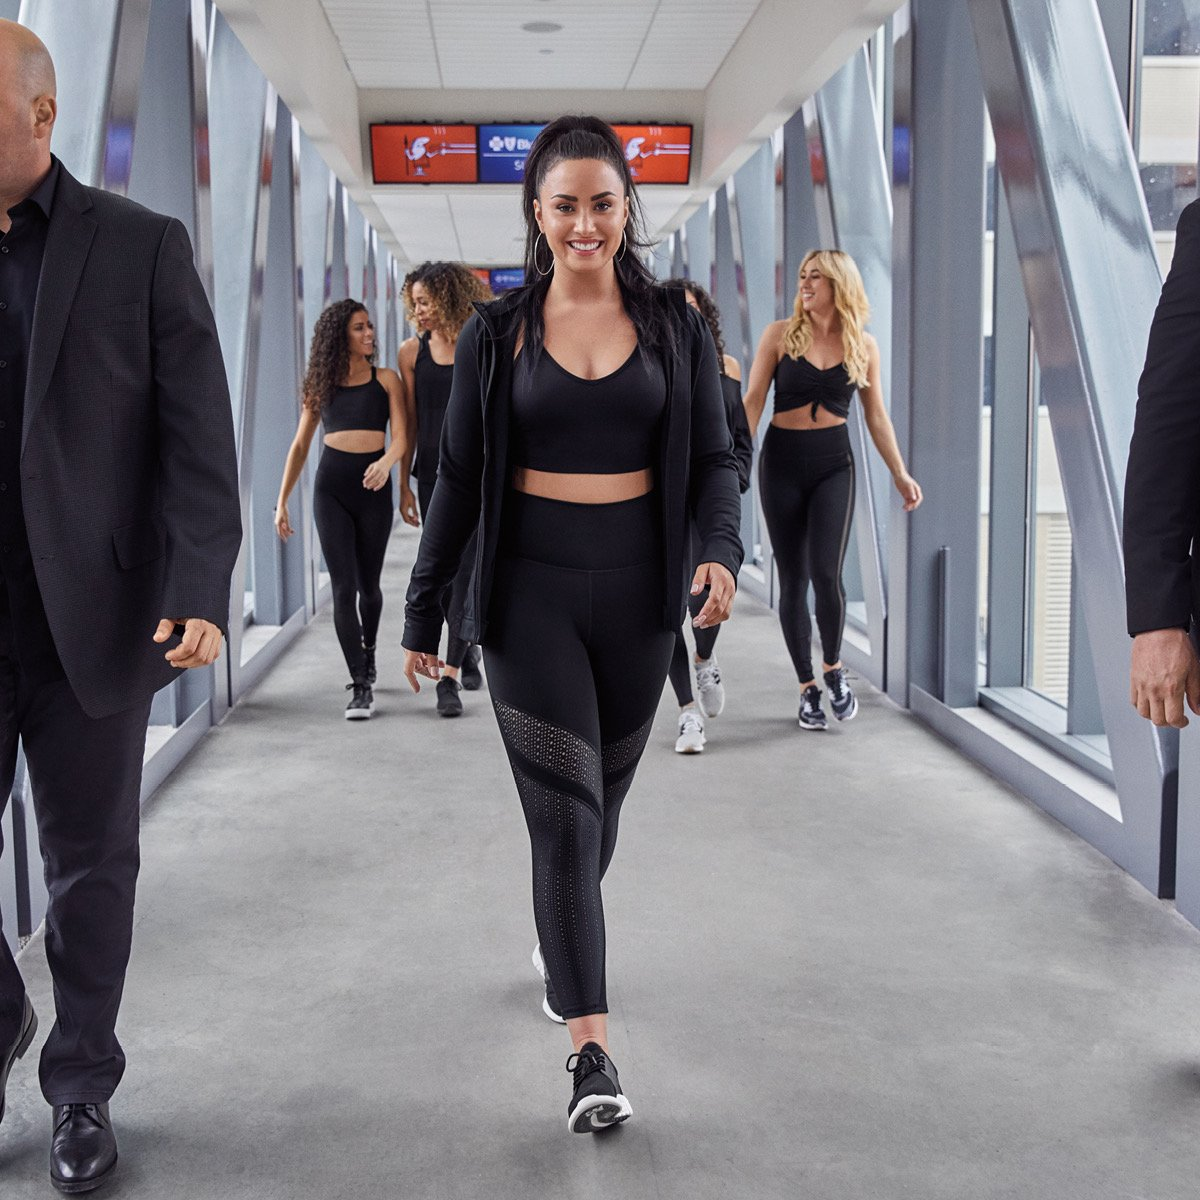 Straight off the runway from my new @Fabletics capsule collection �� https://t.co/IfTIVqSnJ5 #Demi4Fabletics https://t.co/TebdH7WJeV